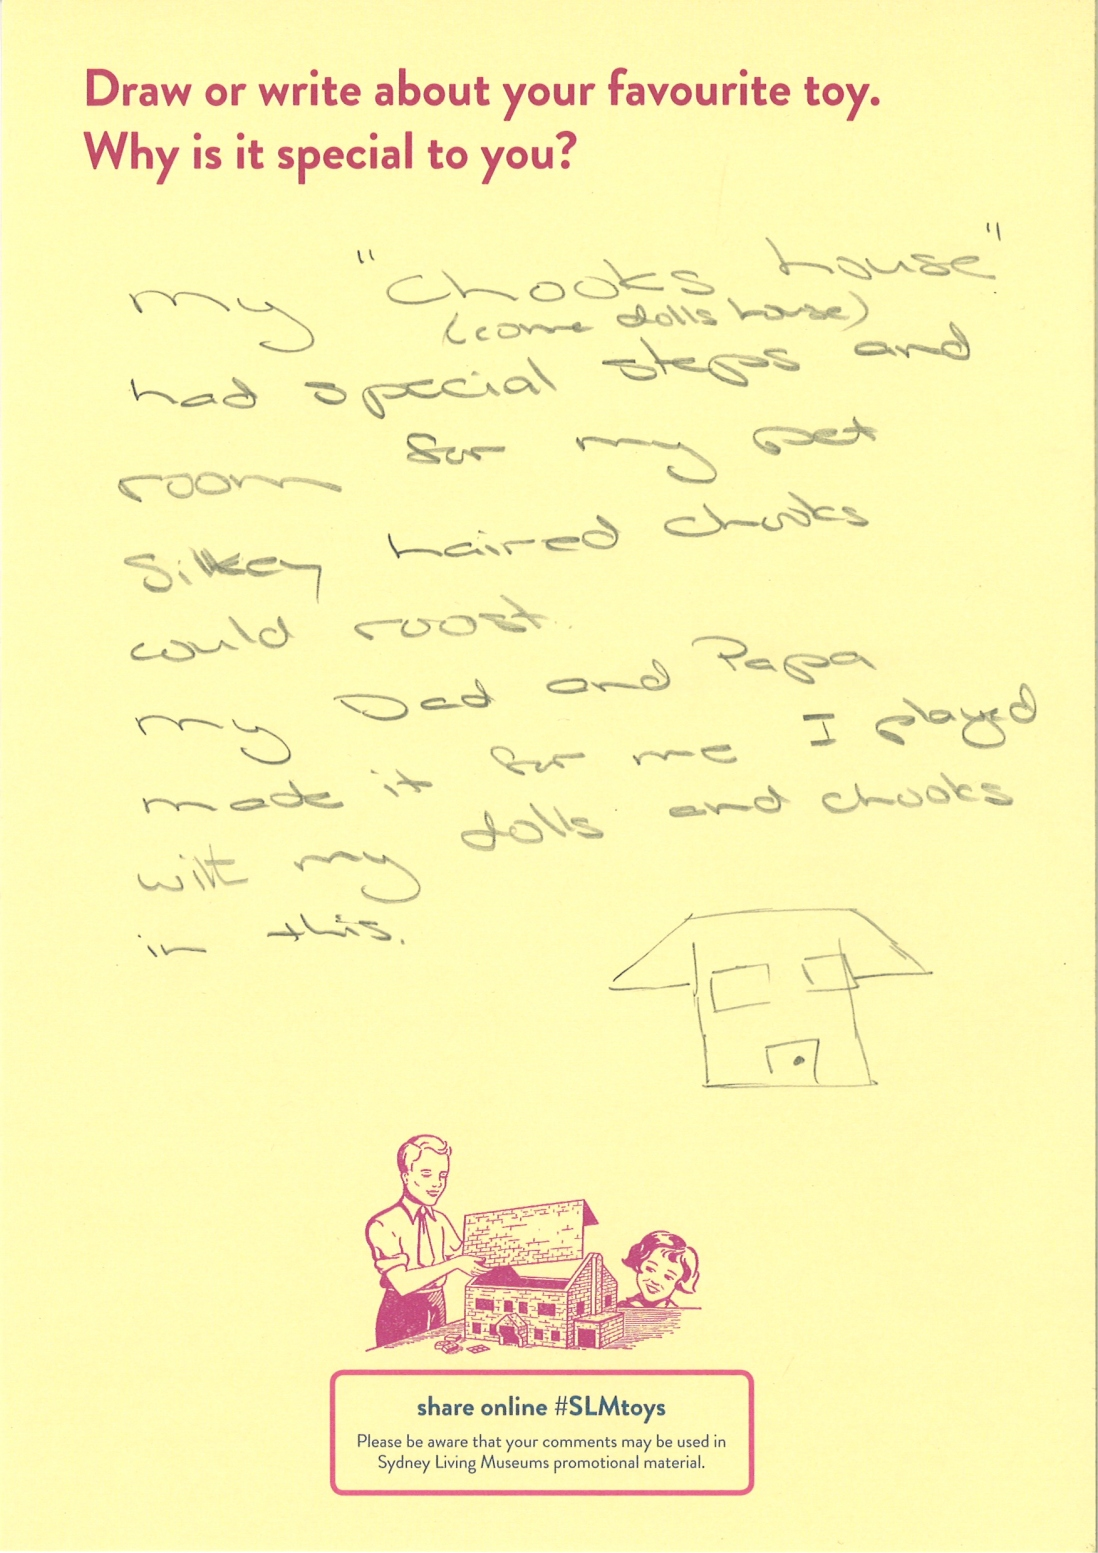 This is shows a handwritten story about a doll house